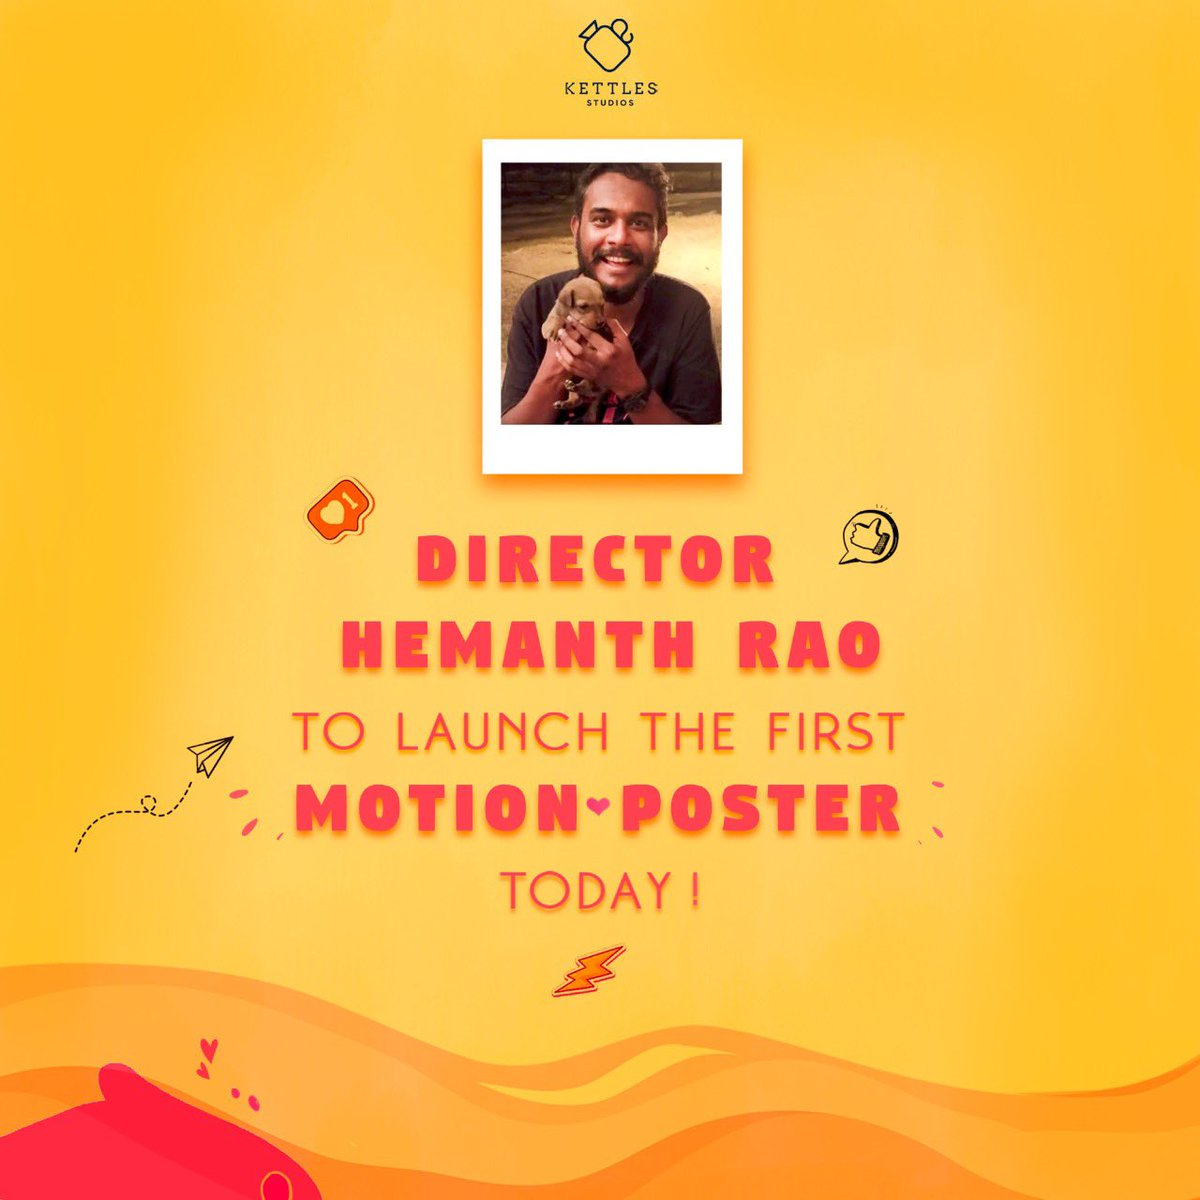 So pleased that @hemanthrao11 is releasing the motion poster for us tonight. Yay! https://t.co/YDNMpU25SI